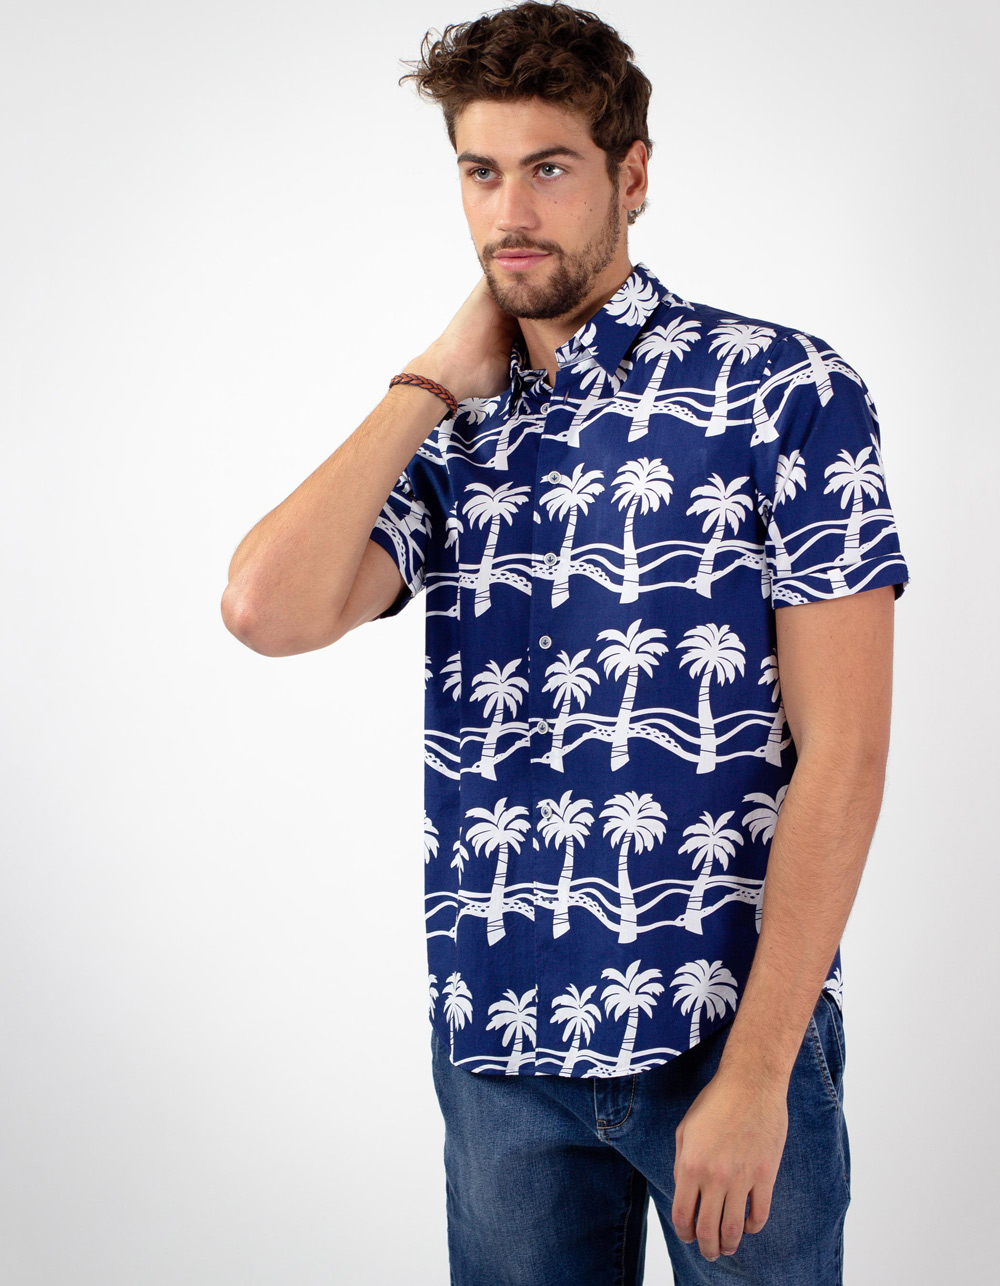 Navy shirt, white palm trees print